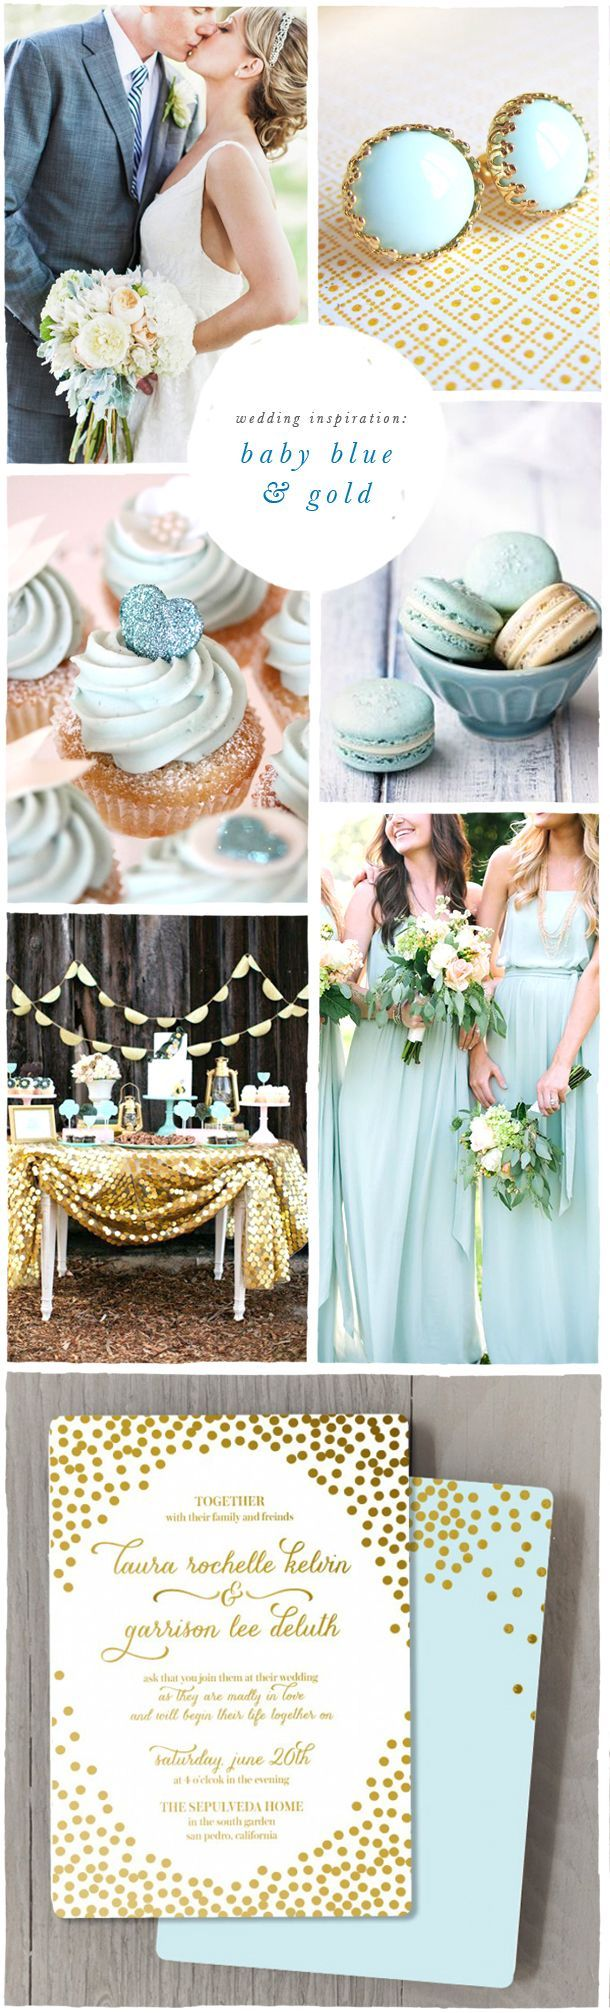 Blue & Gold Wedding Inspiration | Ft. Confetti Foil Wedding invite by Smitten On Paper